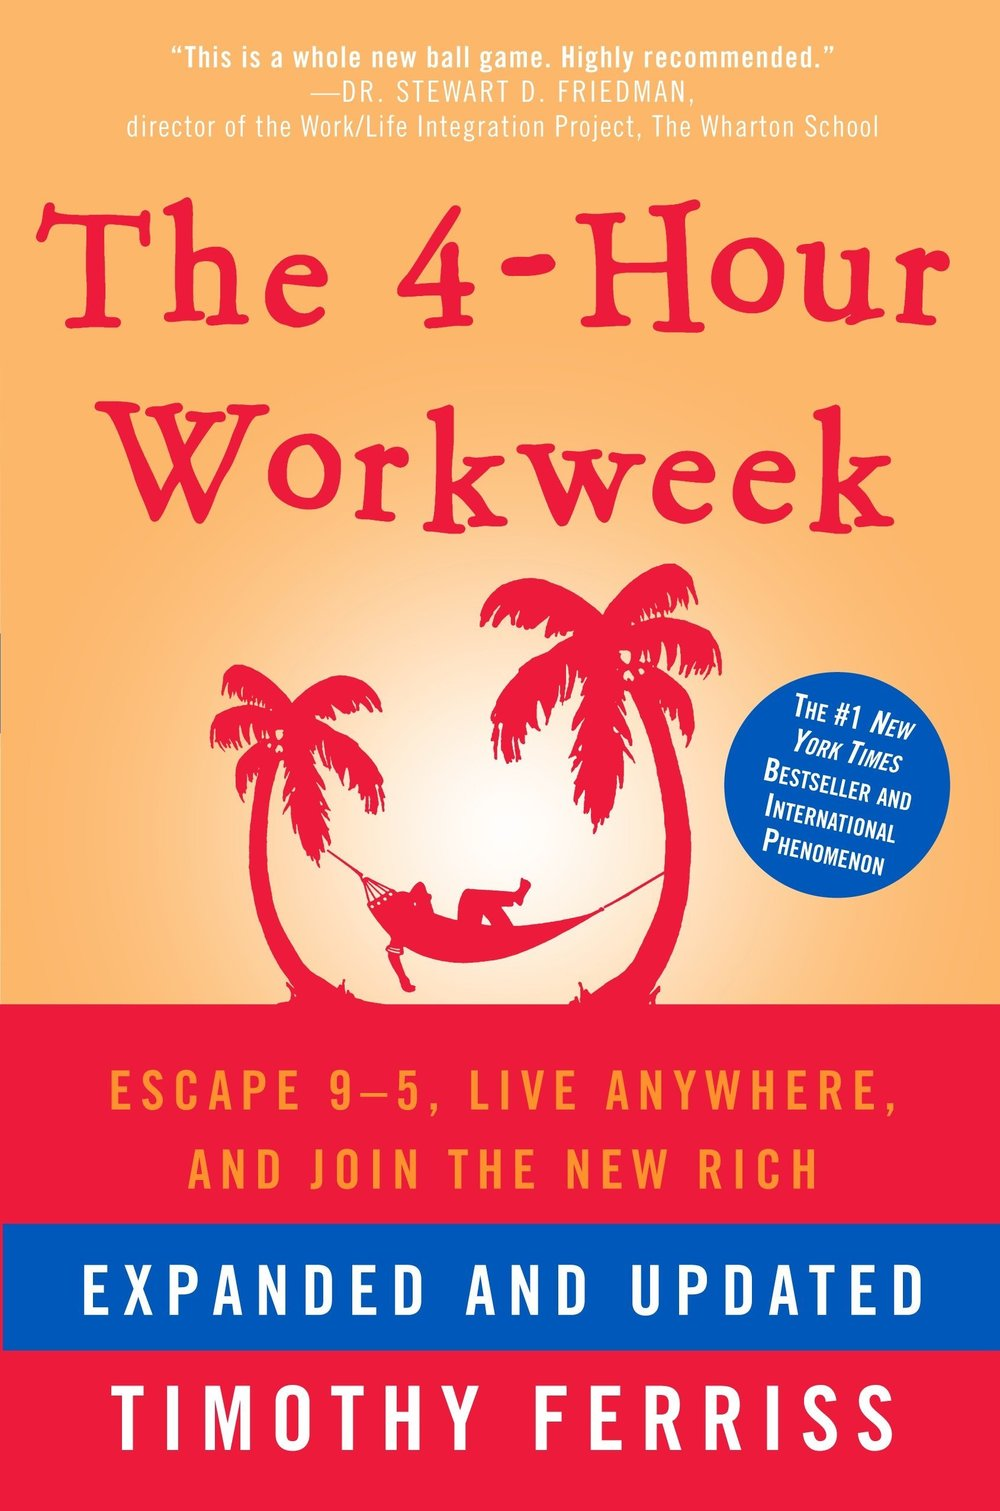 The   4  -  Hour Workweek   is the step-by-step blueprint to free yourself from the shackles of a corporate   job  , create a business to fund the lifestyle of your dreams, and live life like a millionaire, without actually having to be one… YET…